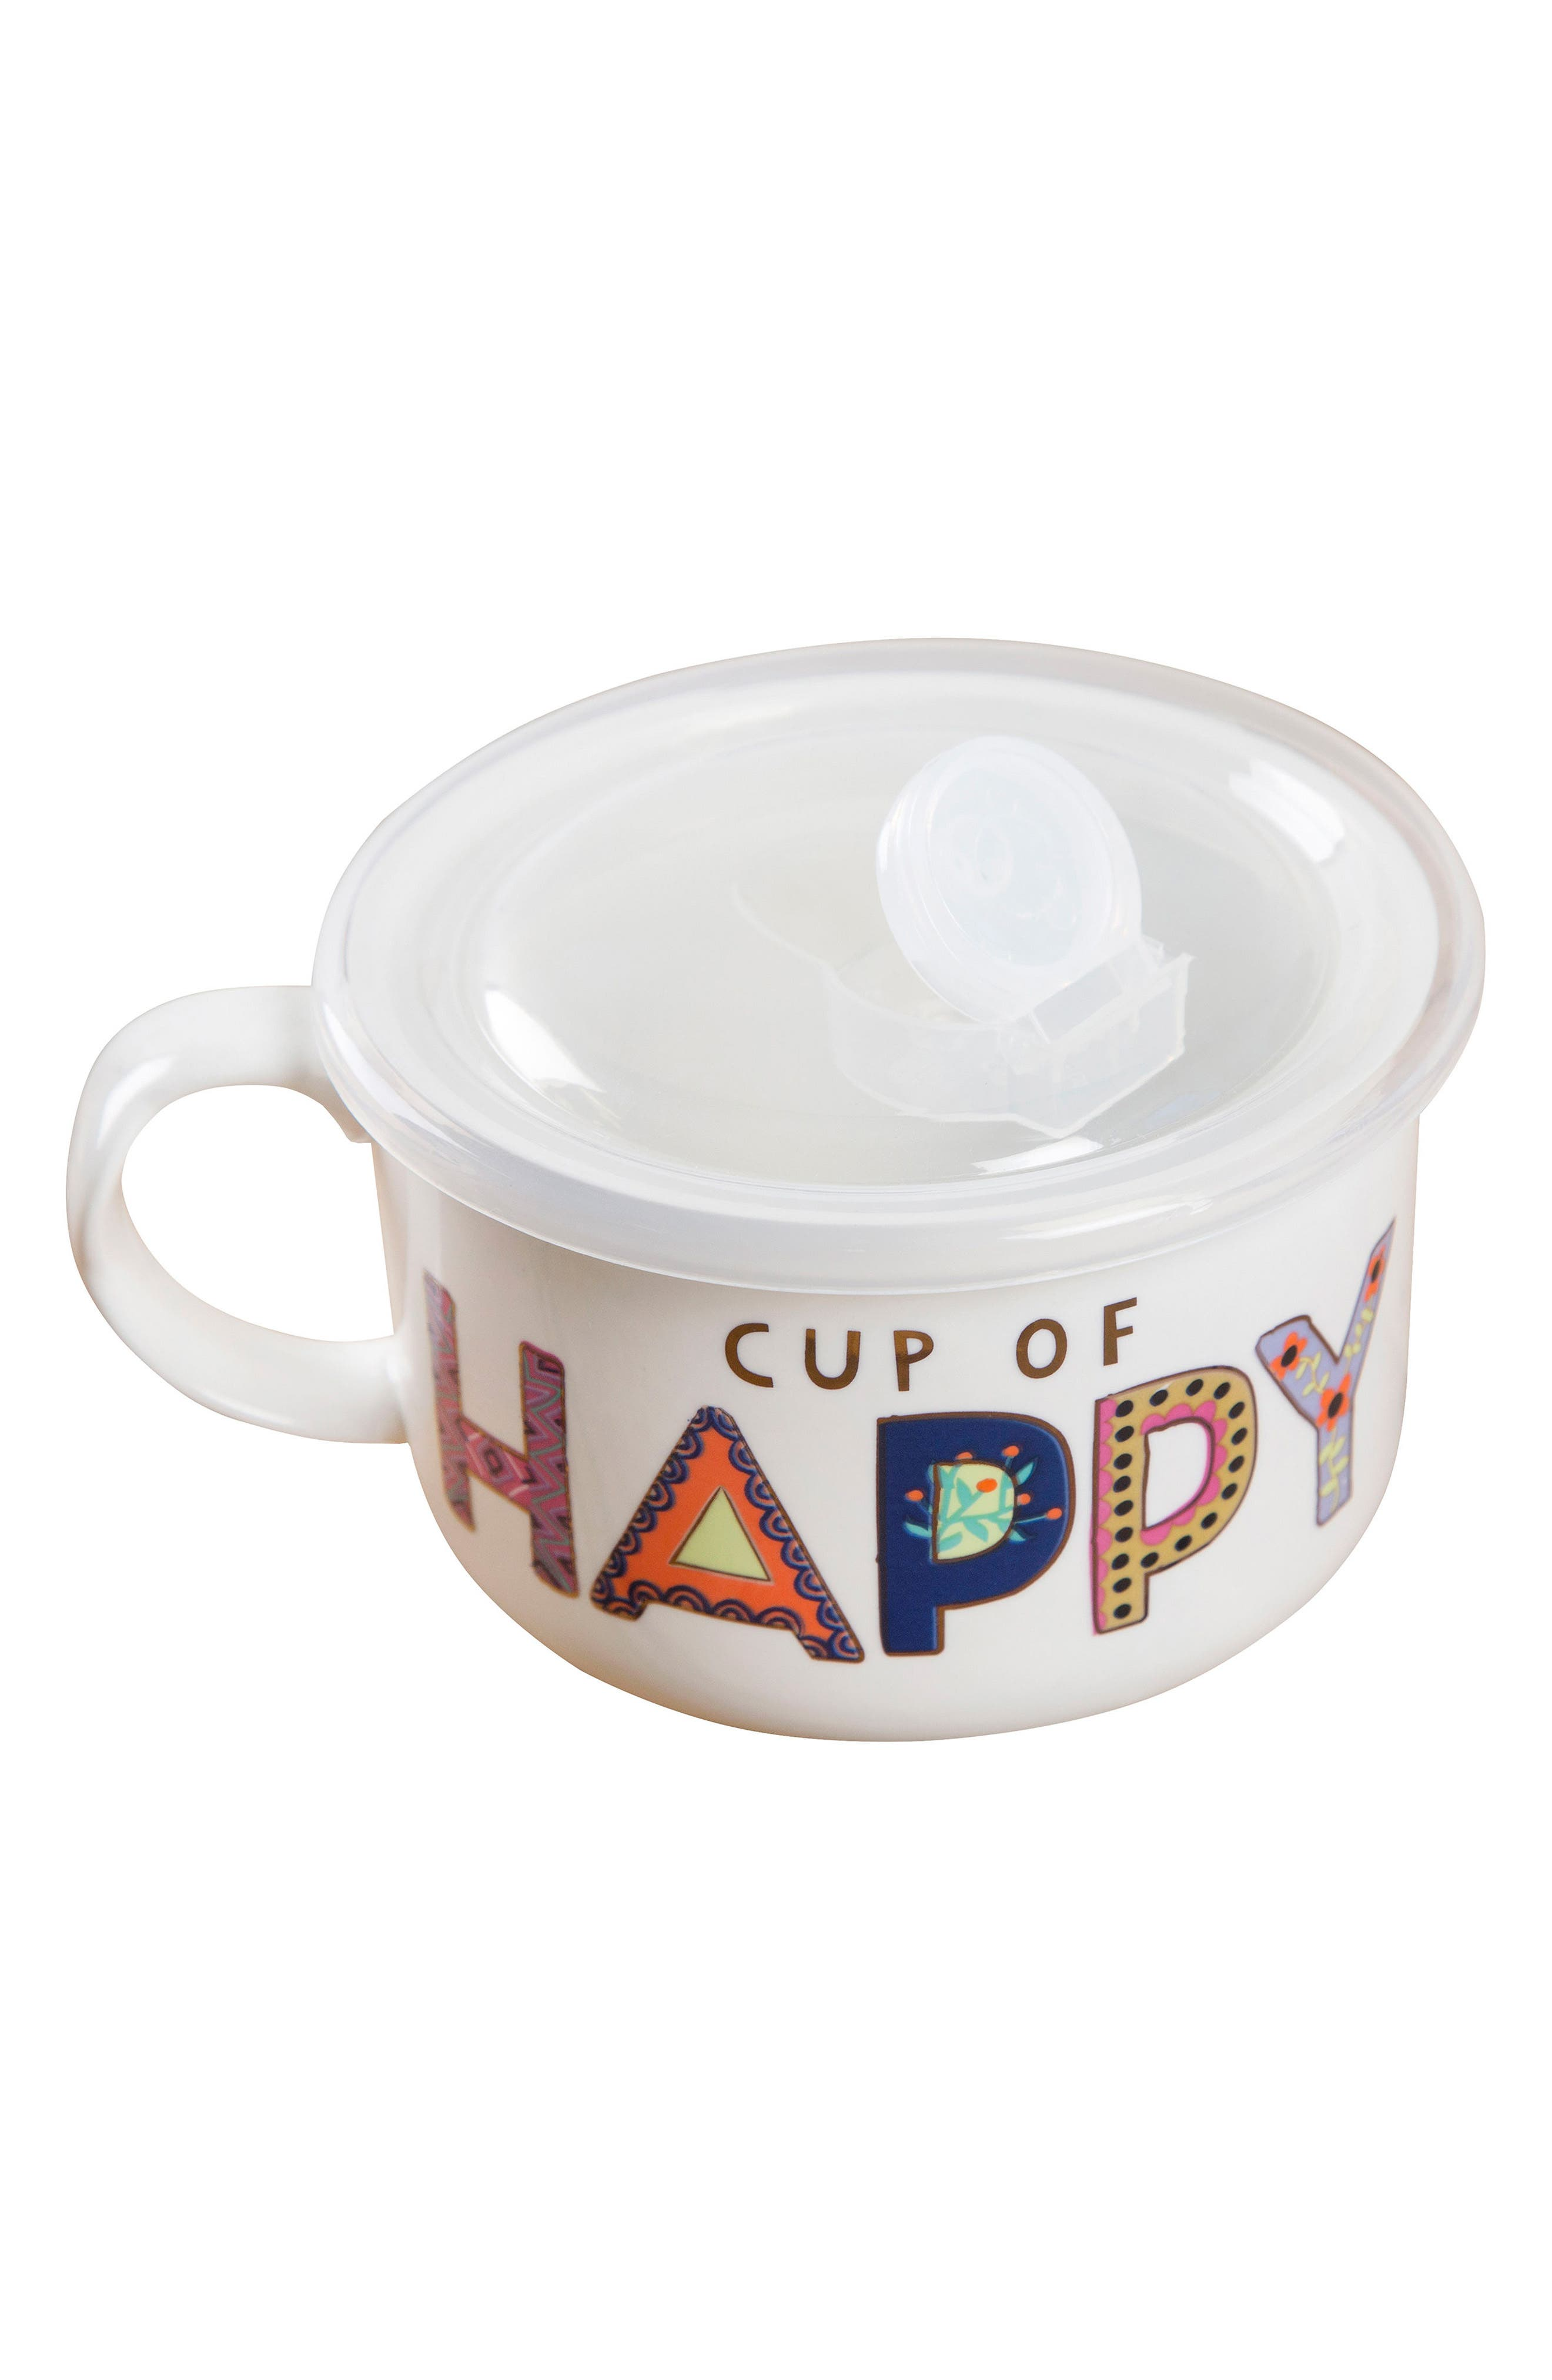 Cup of Happy Lidded Ceramic Soup Mug,                         Main,                         color, Cup Of Happy